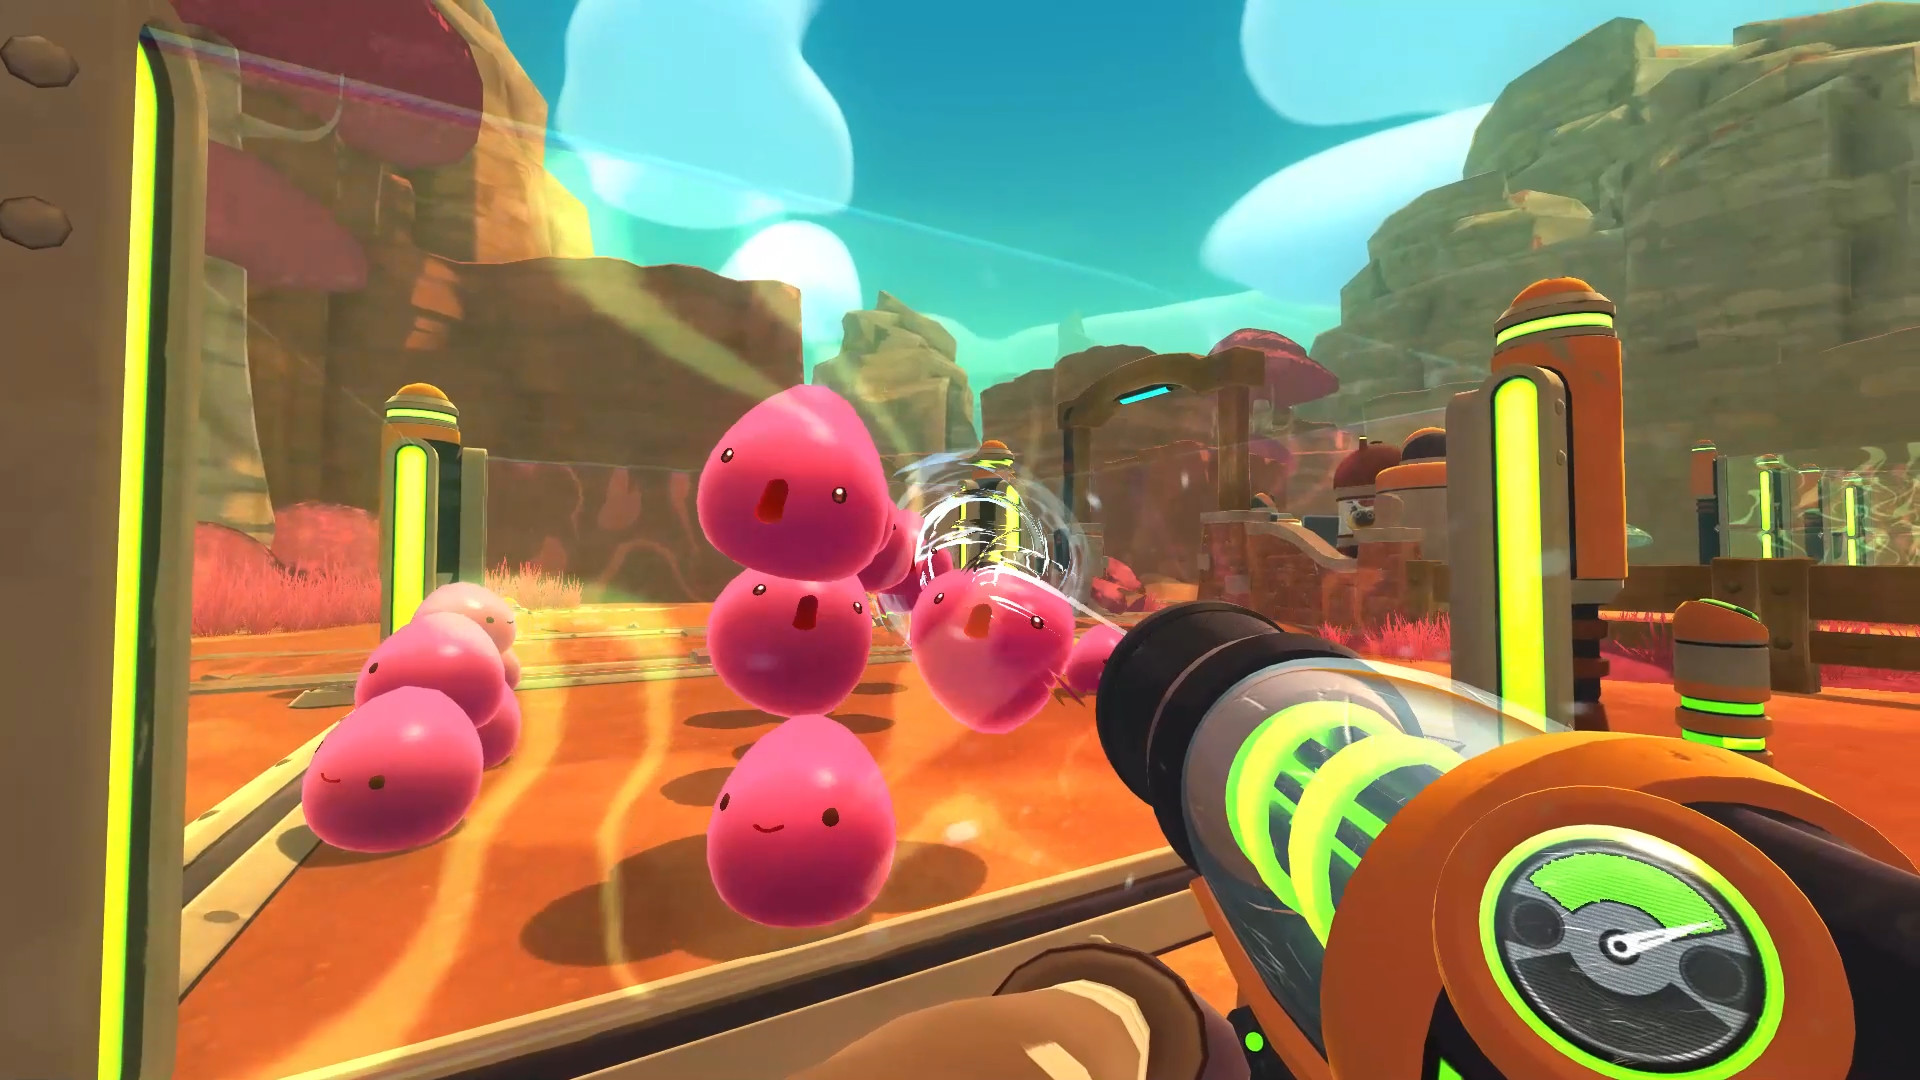 Futuristic gun pointed as a transparent wall of a pen filled with personified pink slimes.